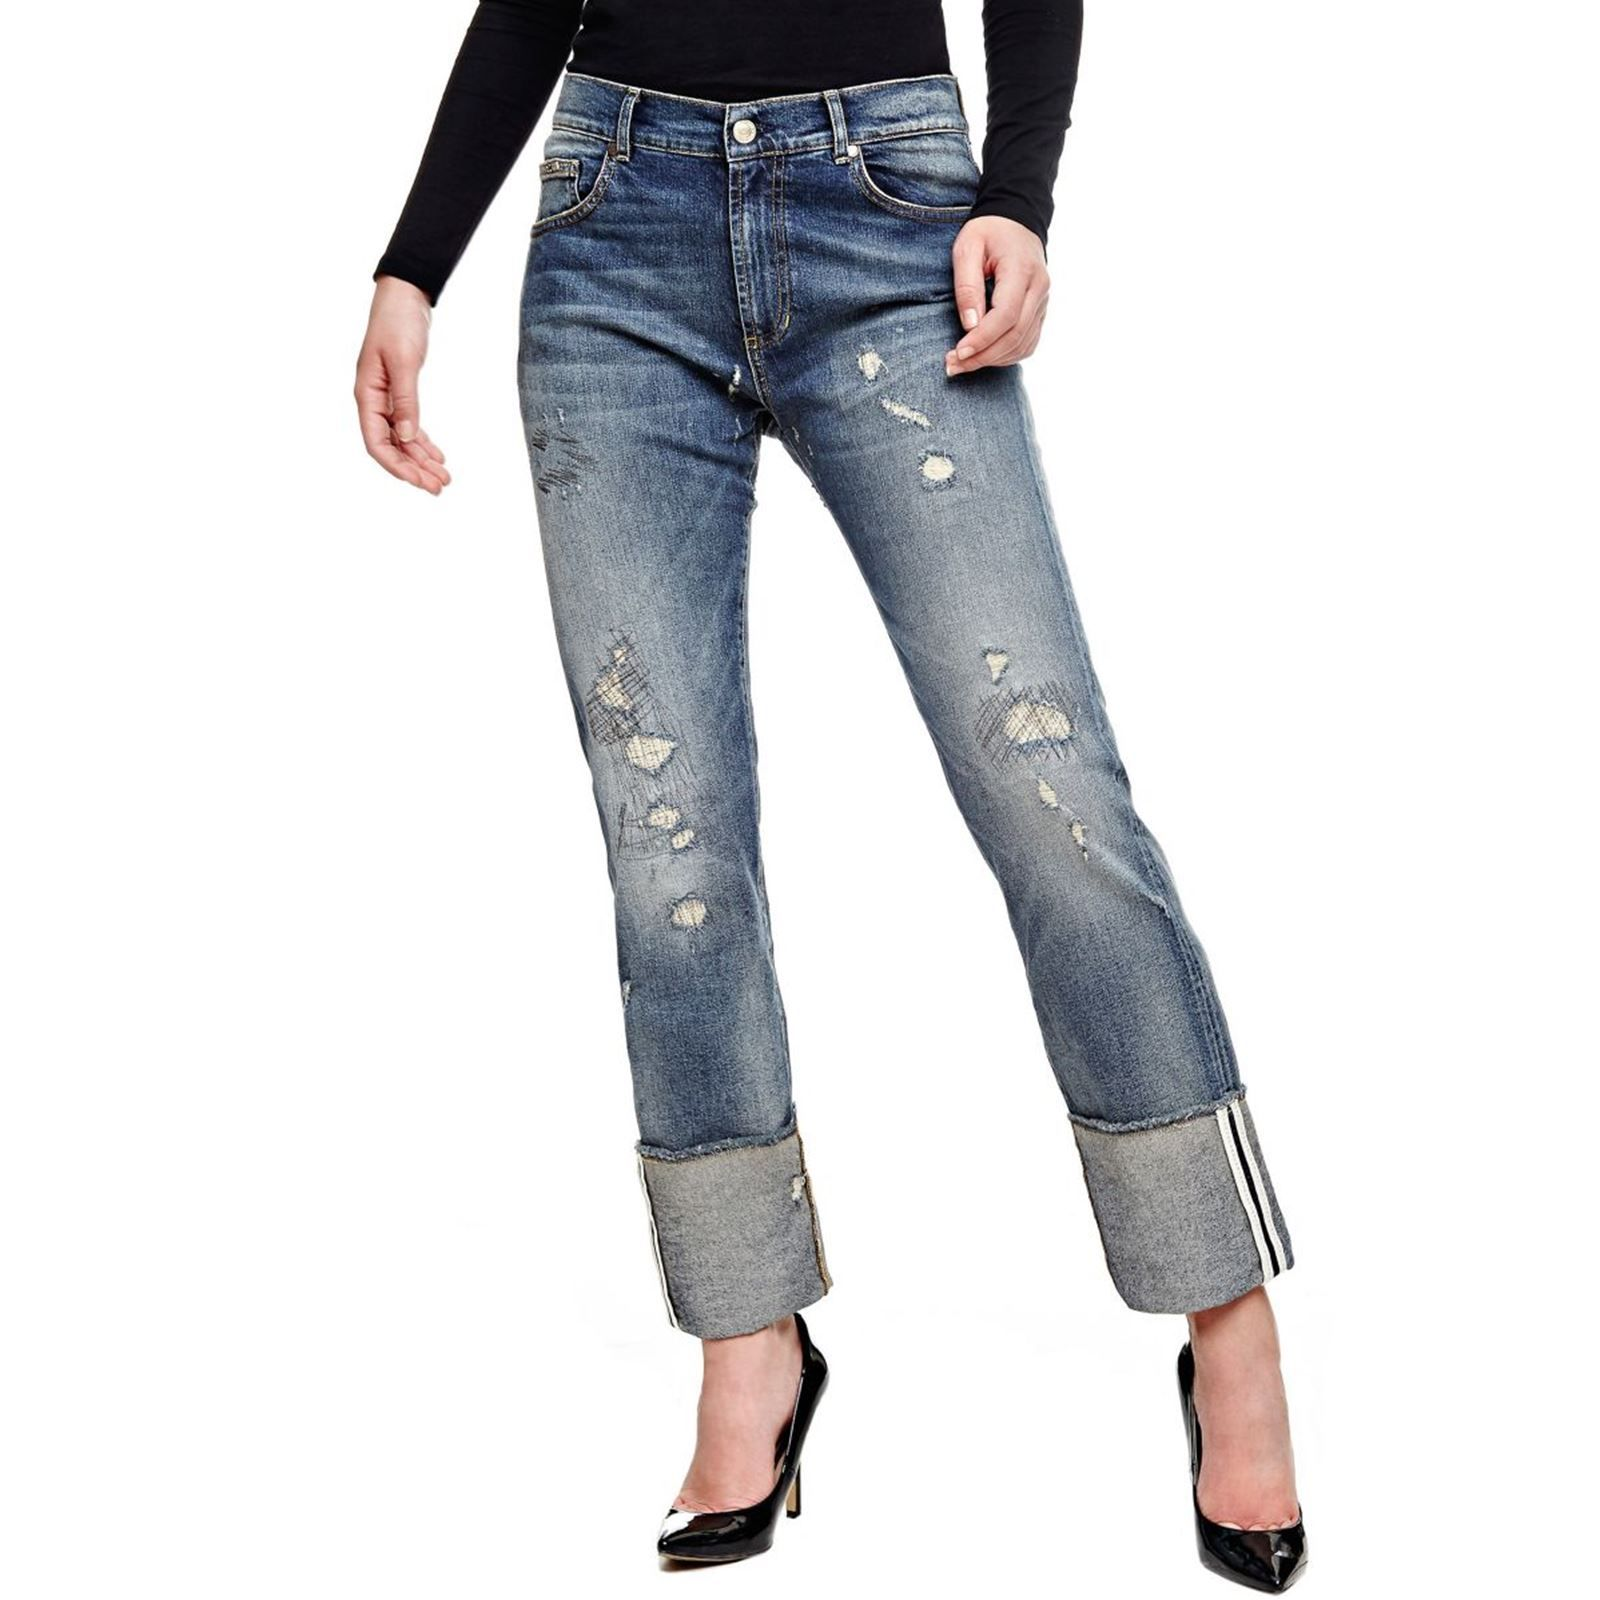 Guess Jean regular - bleu